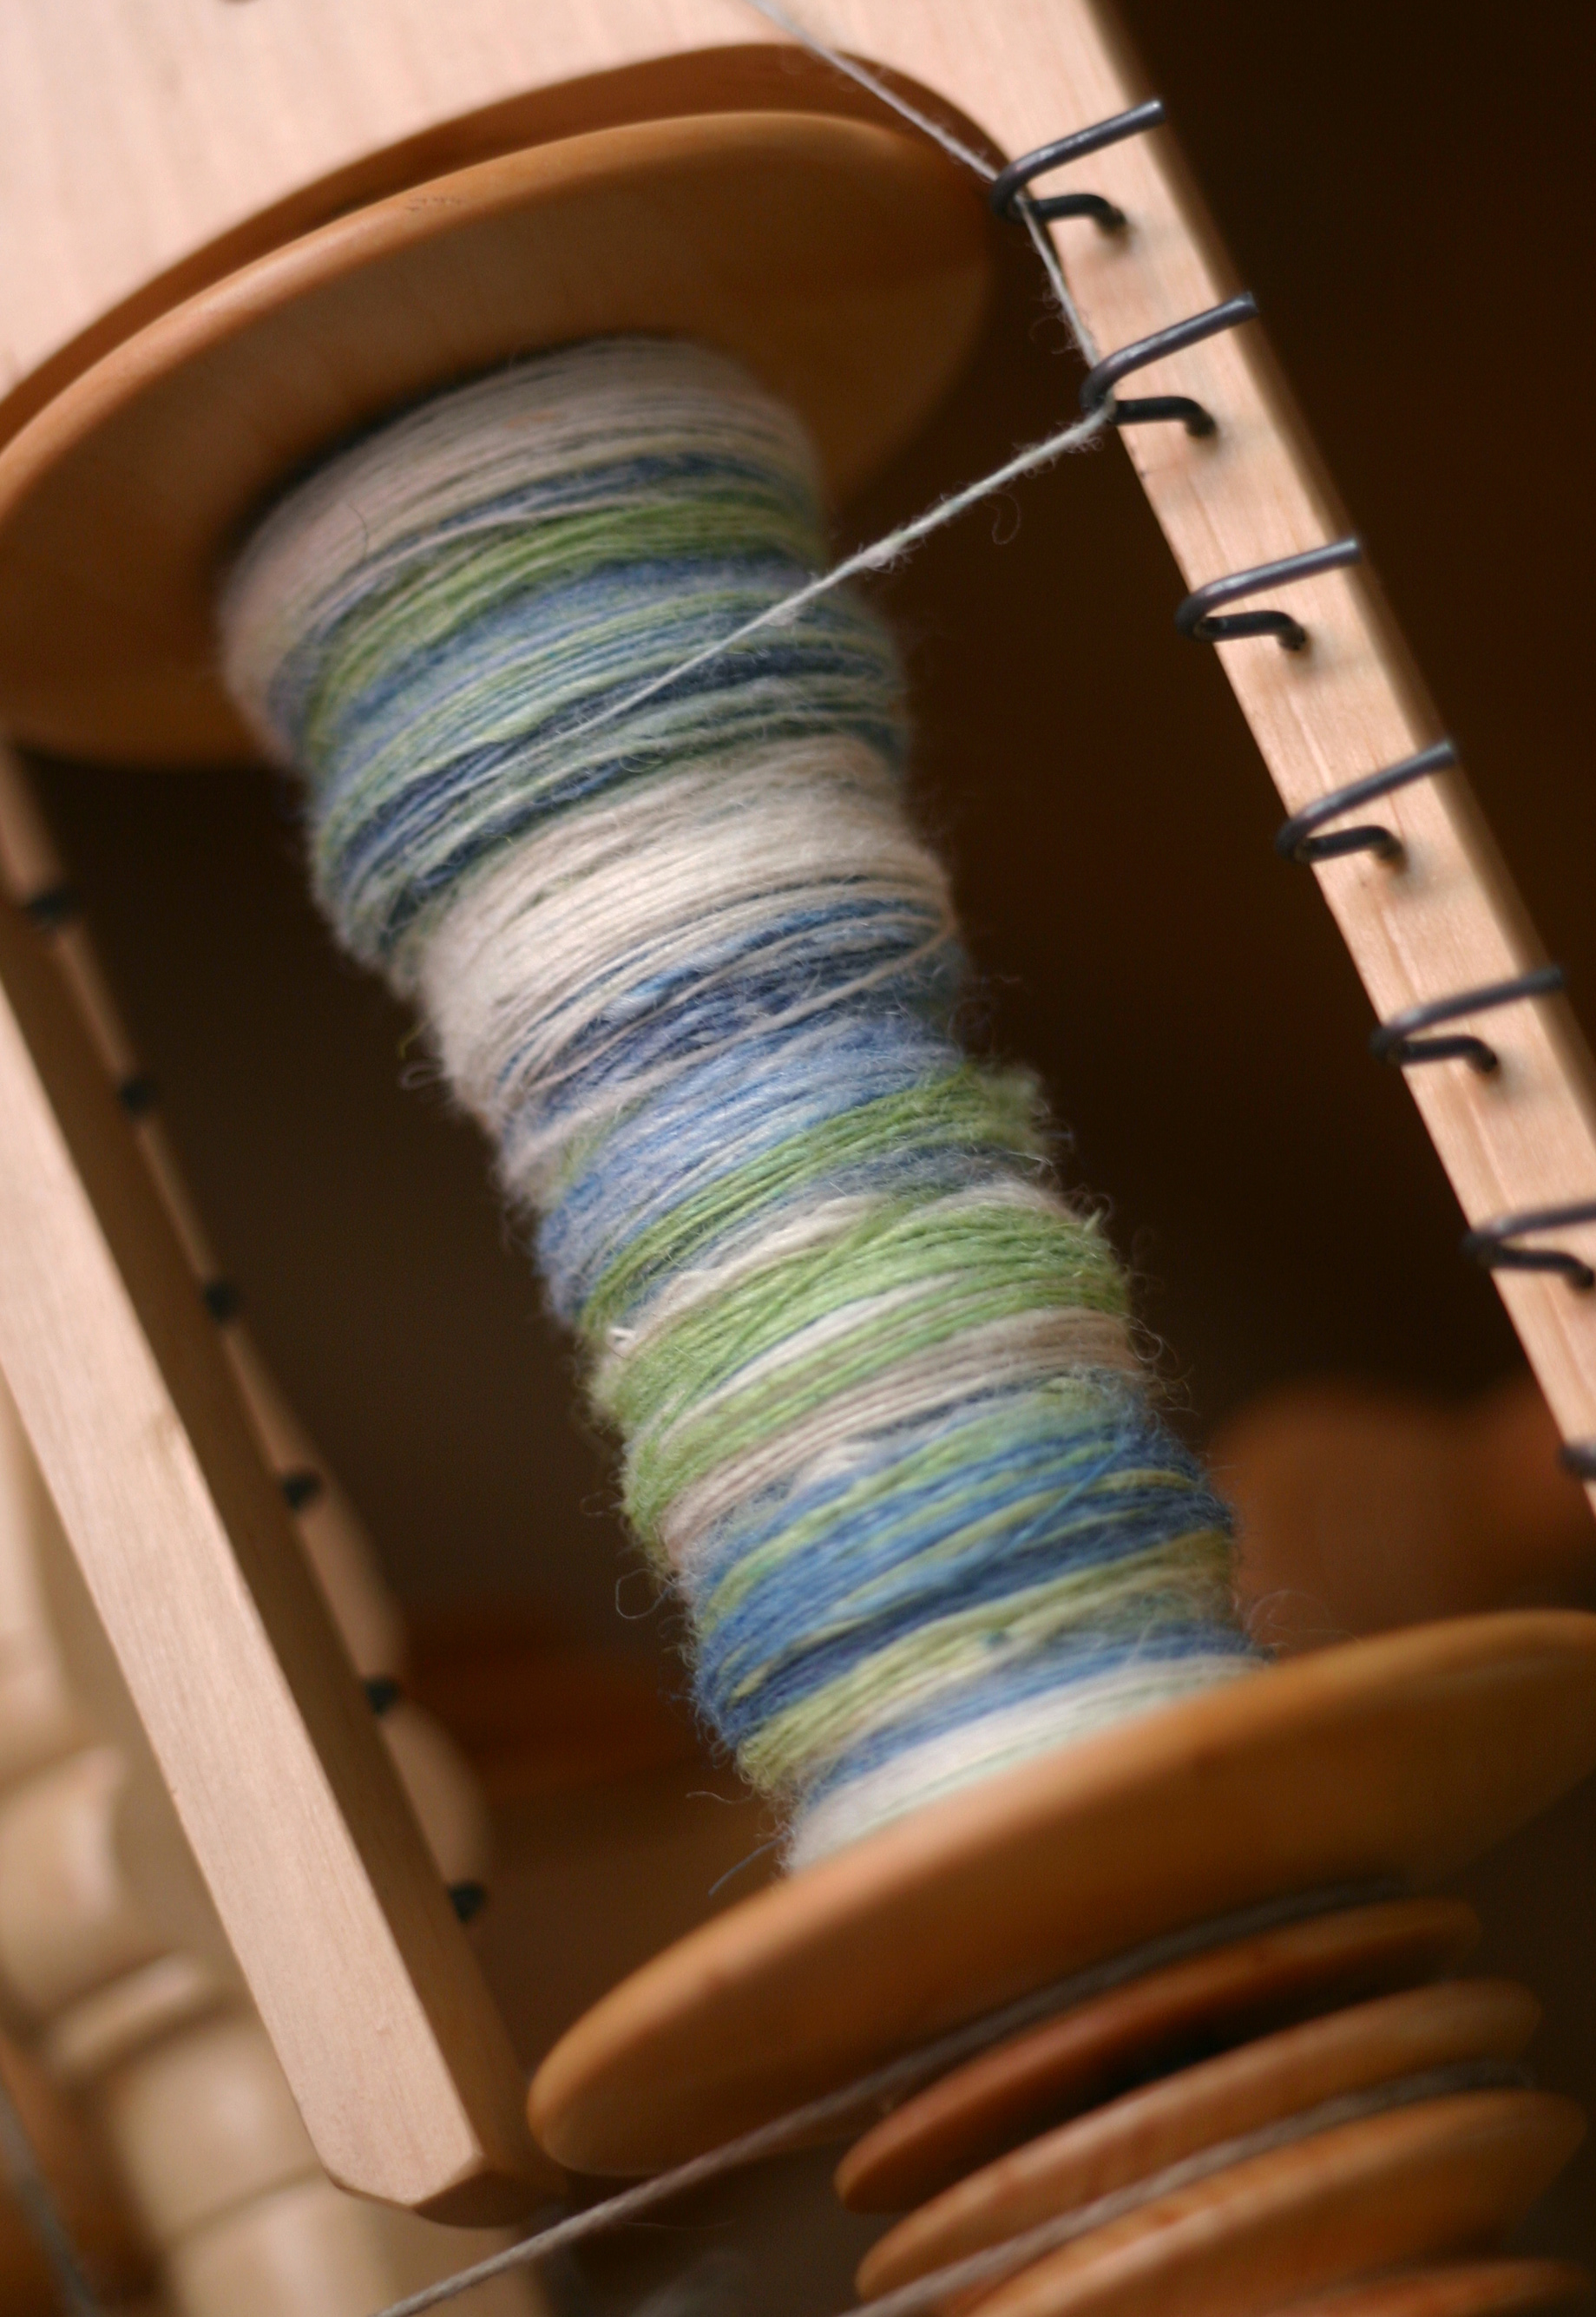 Spin-in: Spinning and Weaving Week Celebration